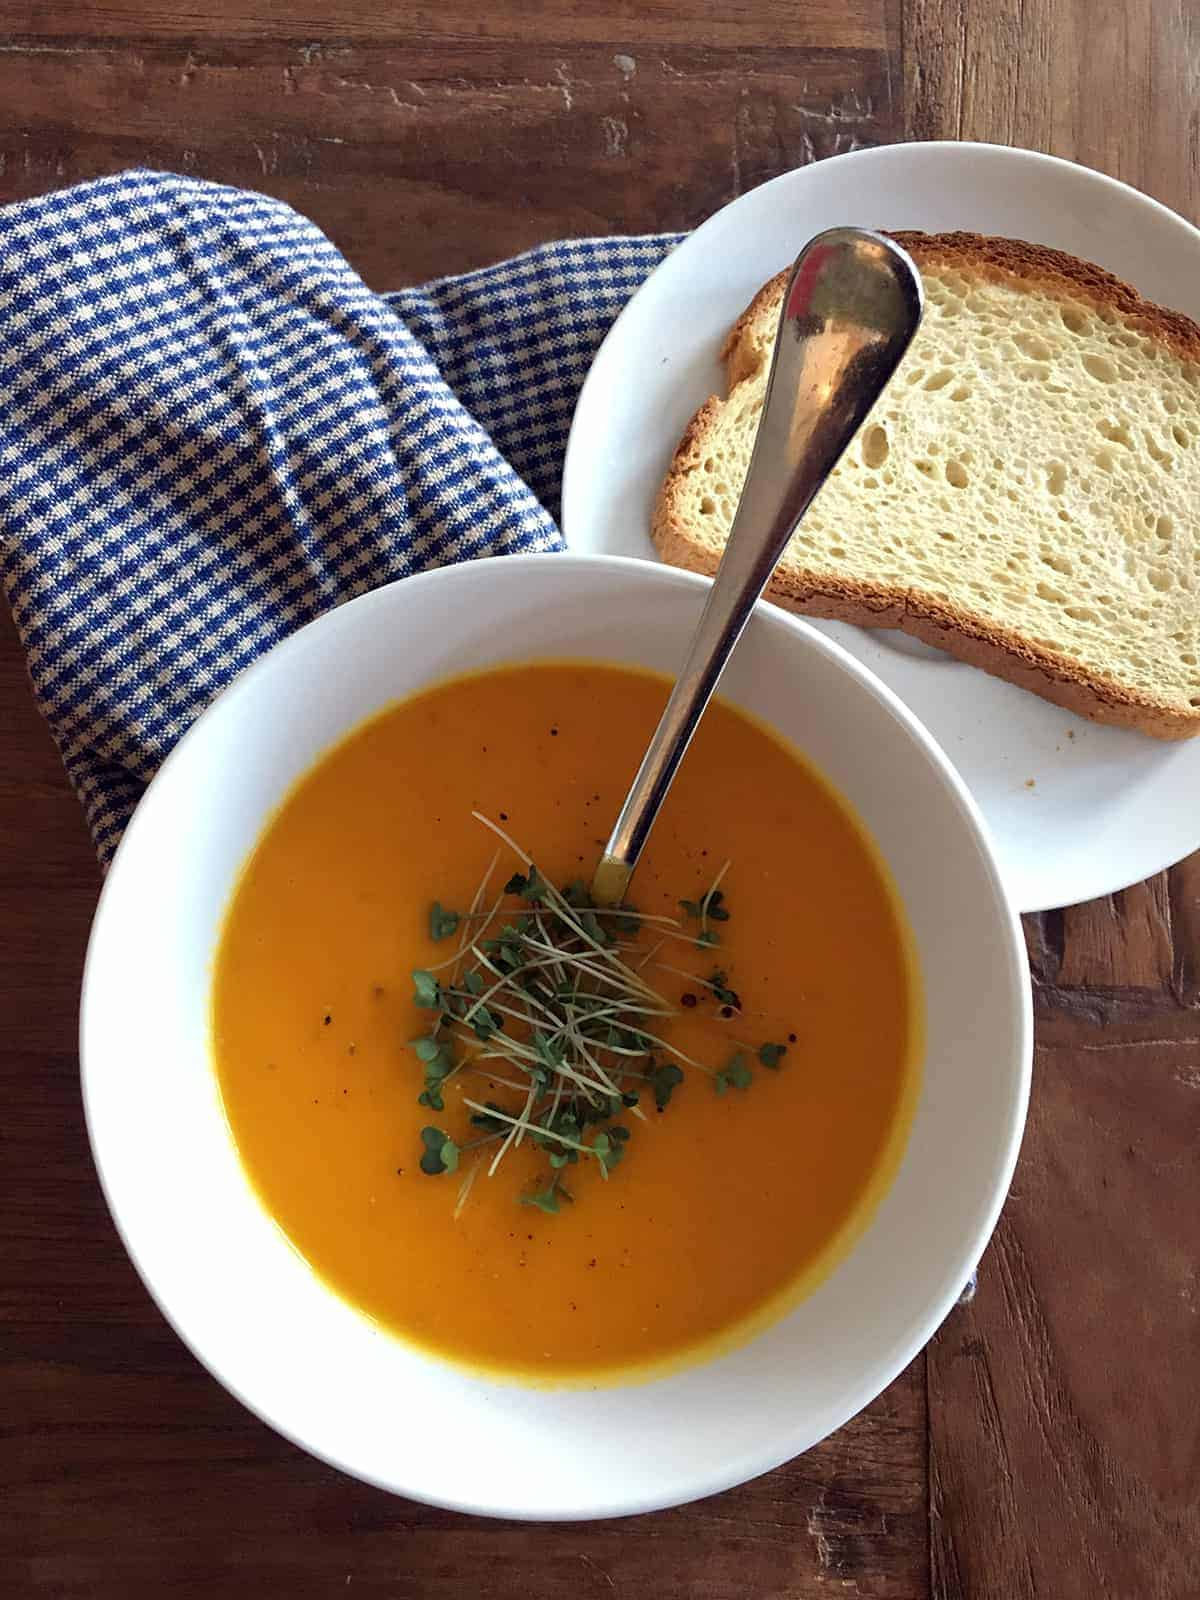 Carrot ginger soup topped with microgreens in a white bowl with a slice of bread on the side